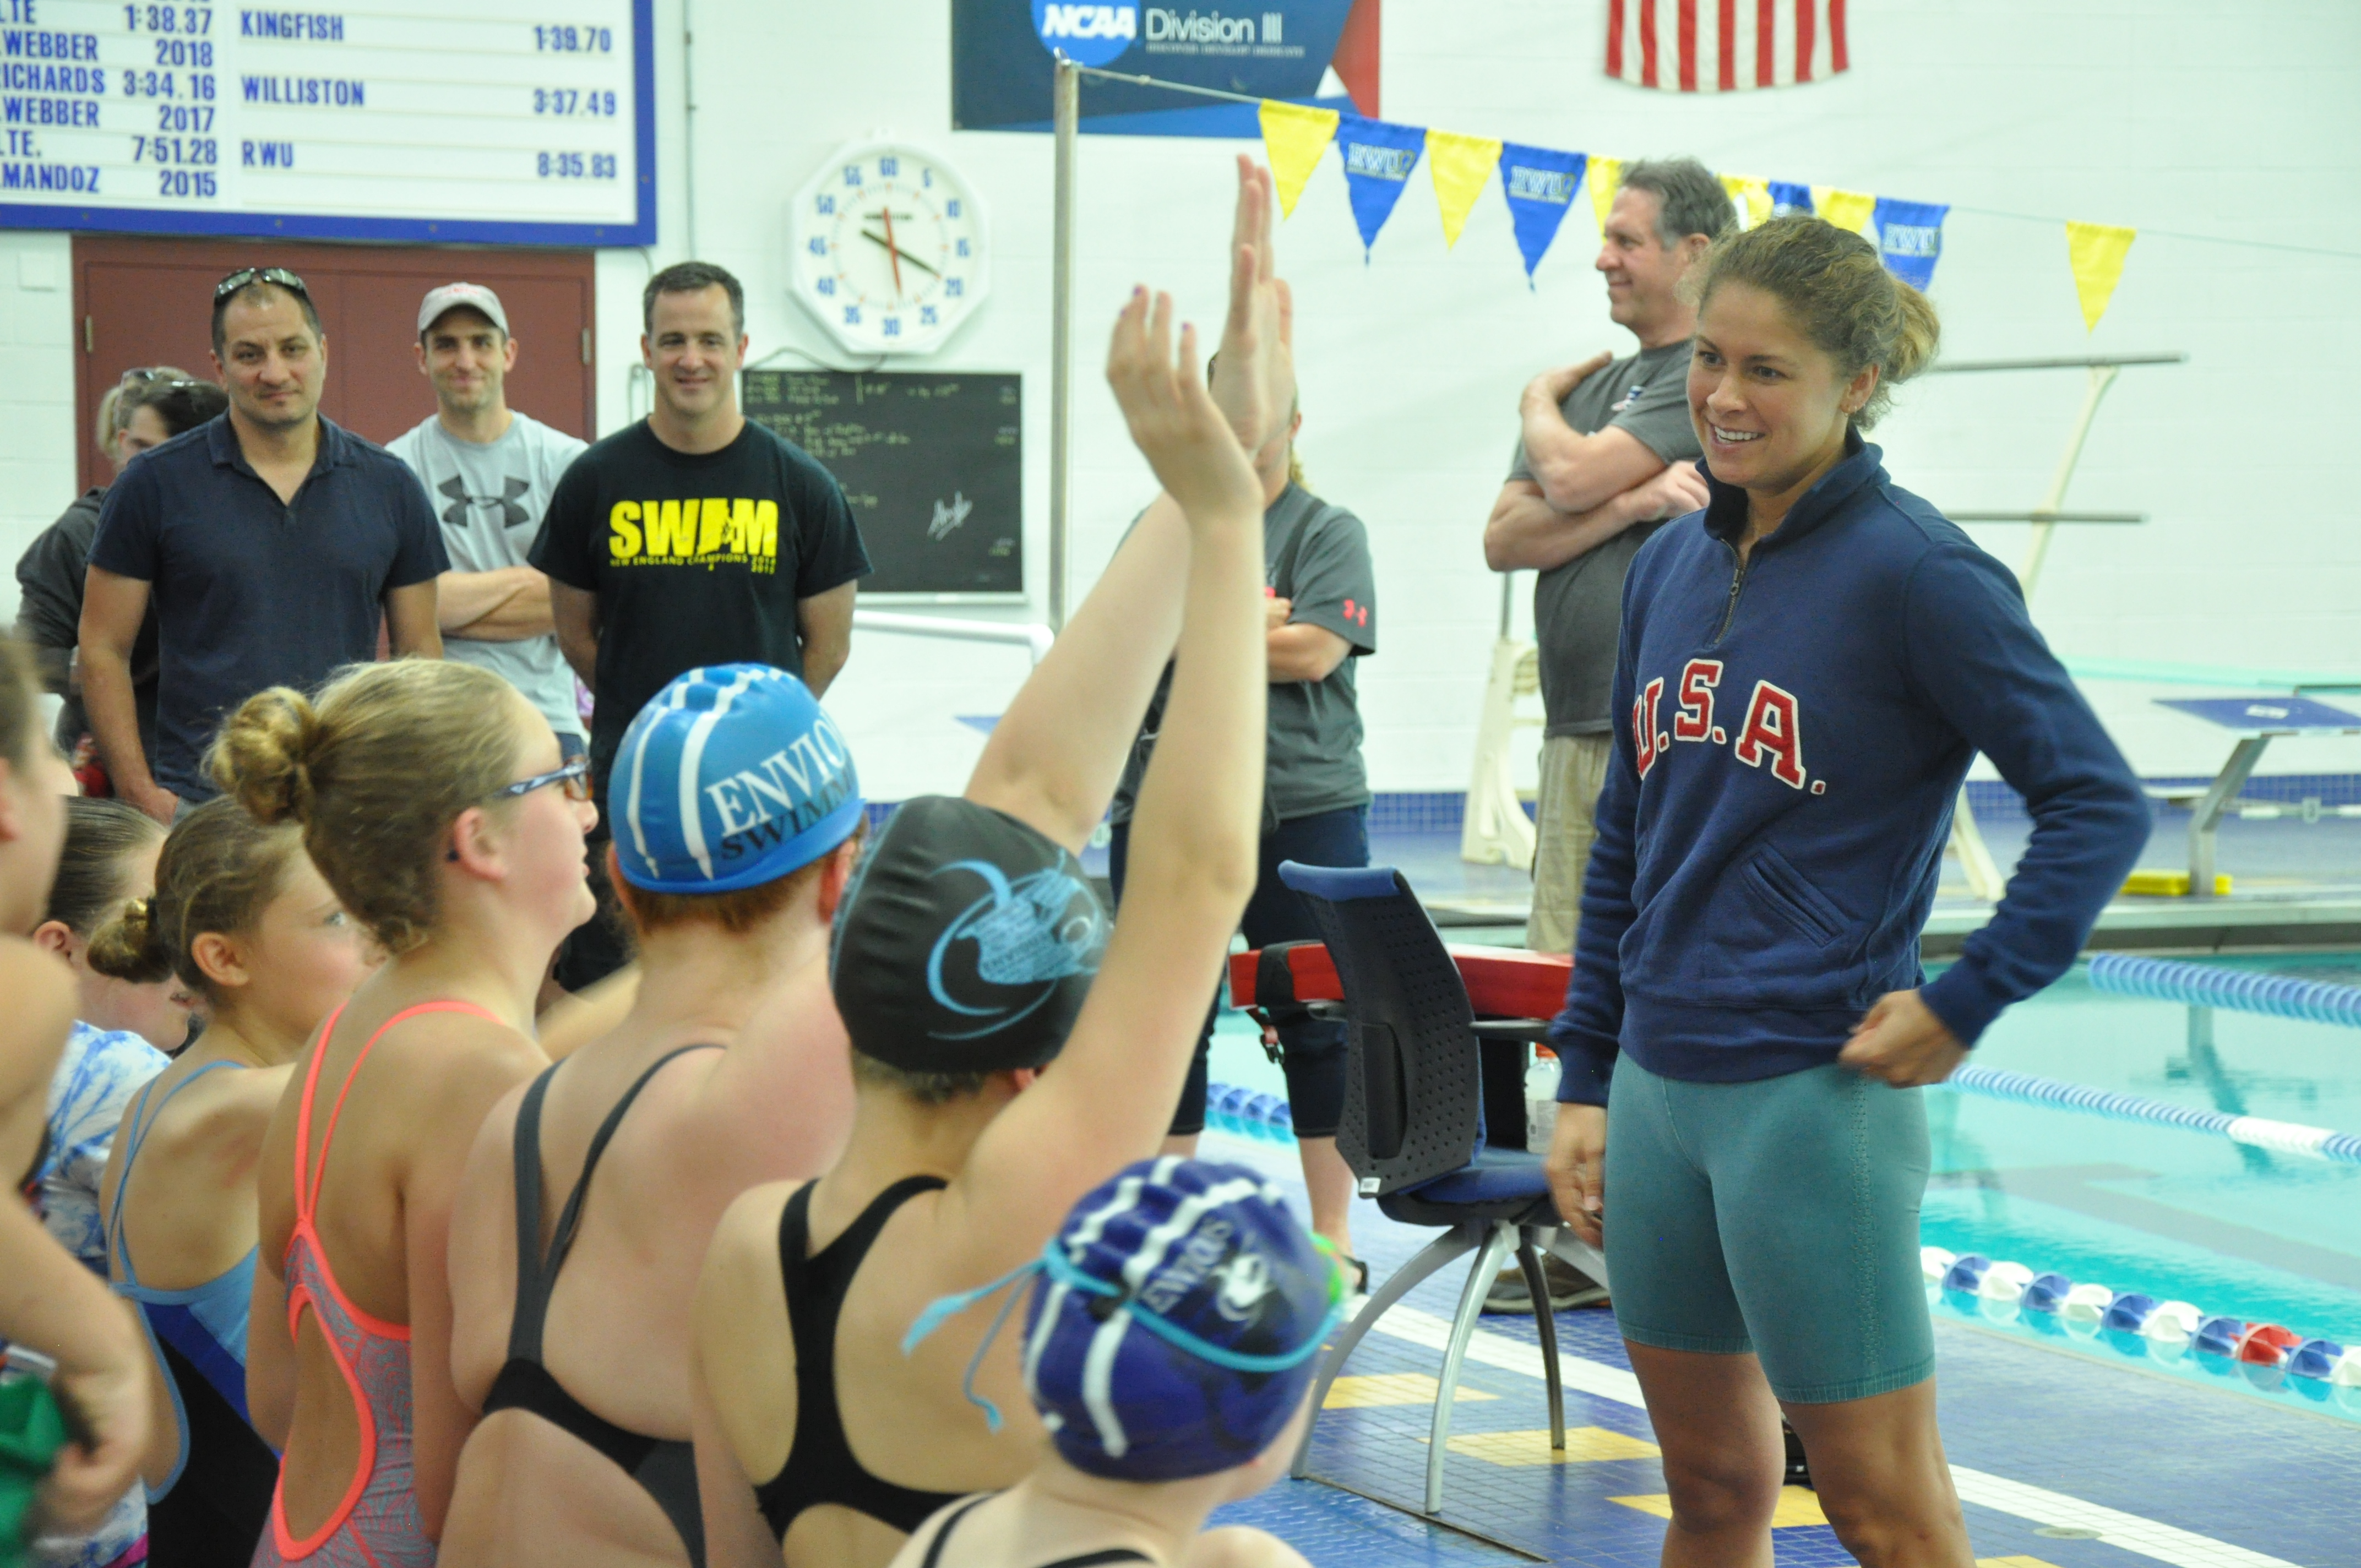 A group of young swimmers face away from the camera, raising hands. Olympic swimmer Elizabeth Beisel stands smiling before them, taking questions, wearing a blue